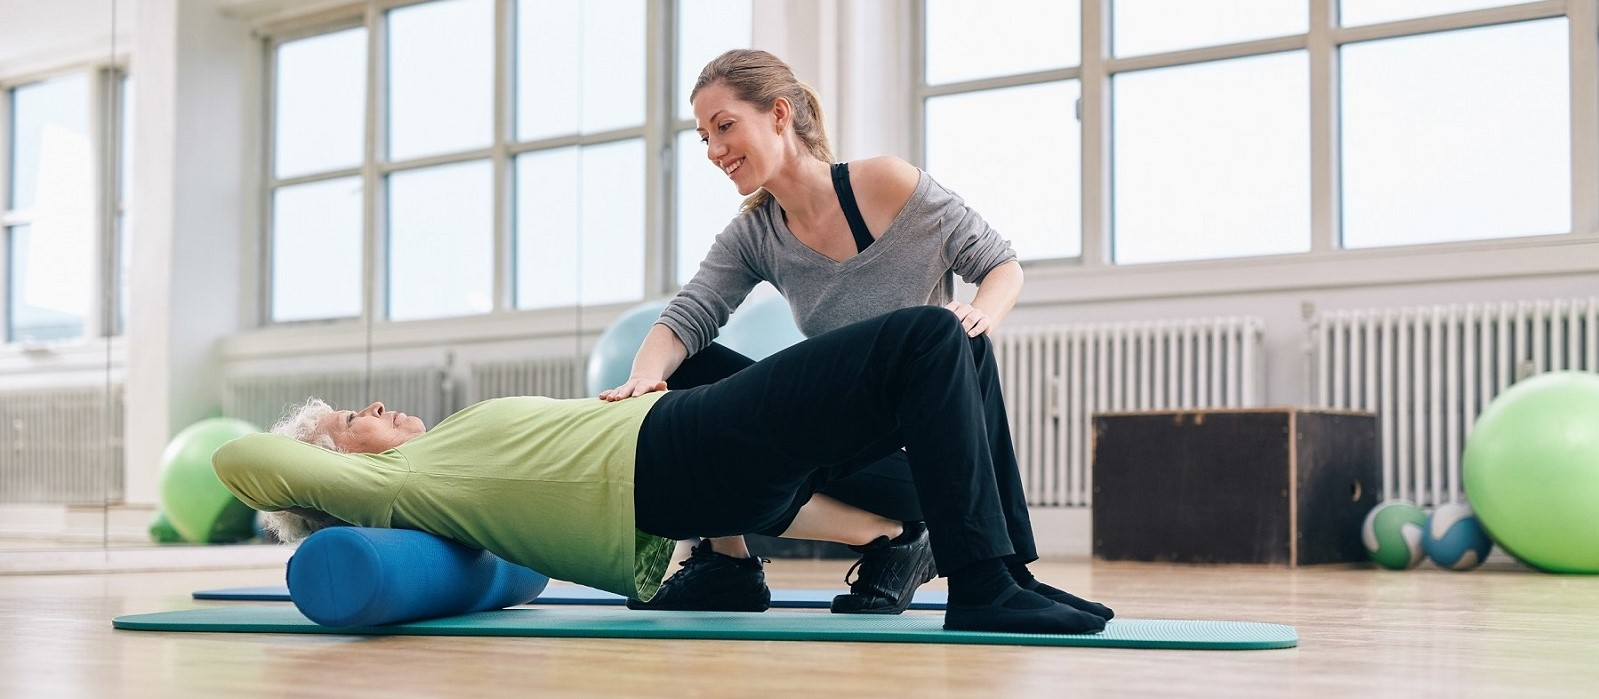 Diana Schwahn has been a physical therapist and certified athletic trainer for more than 25 years.